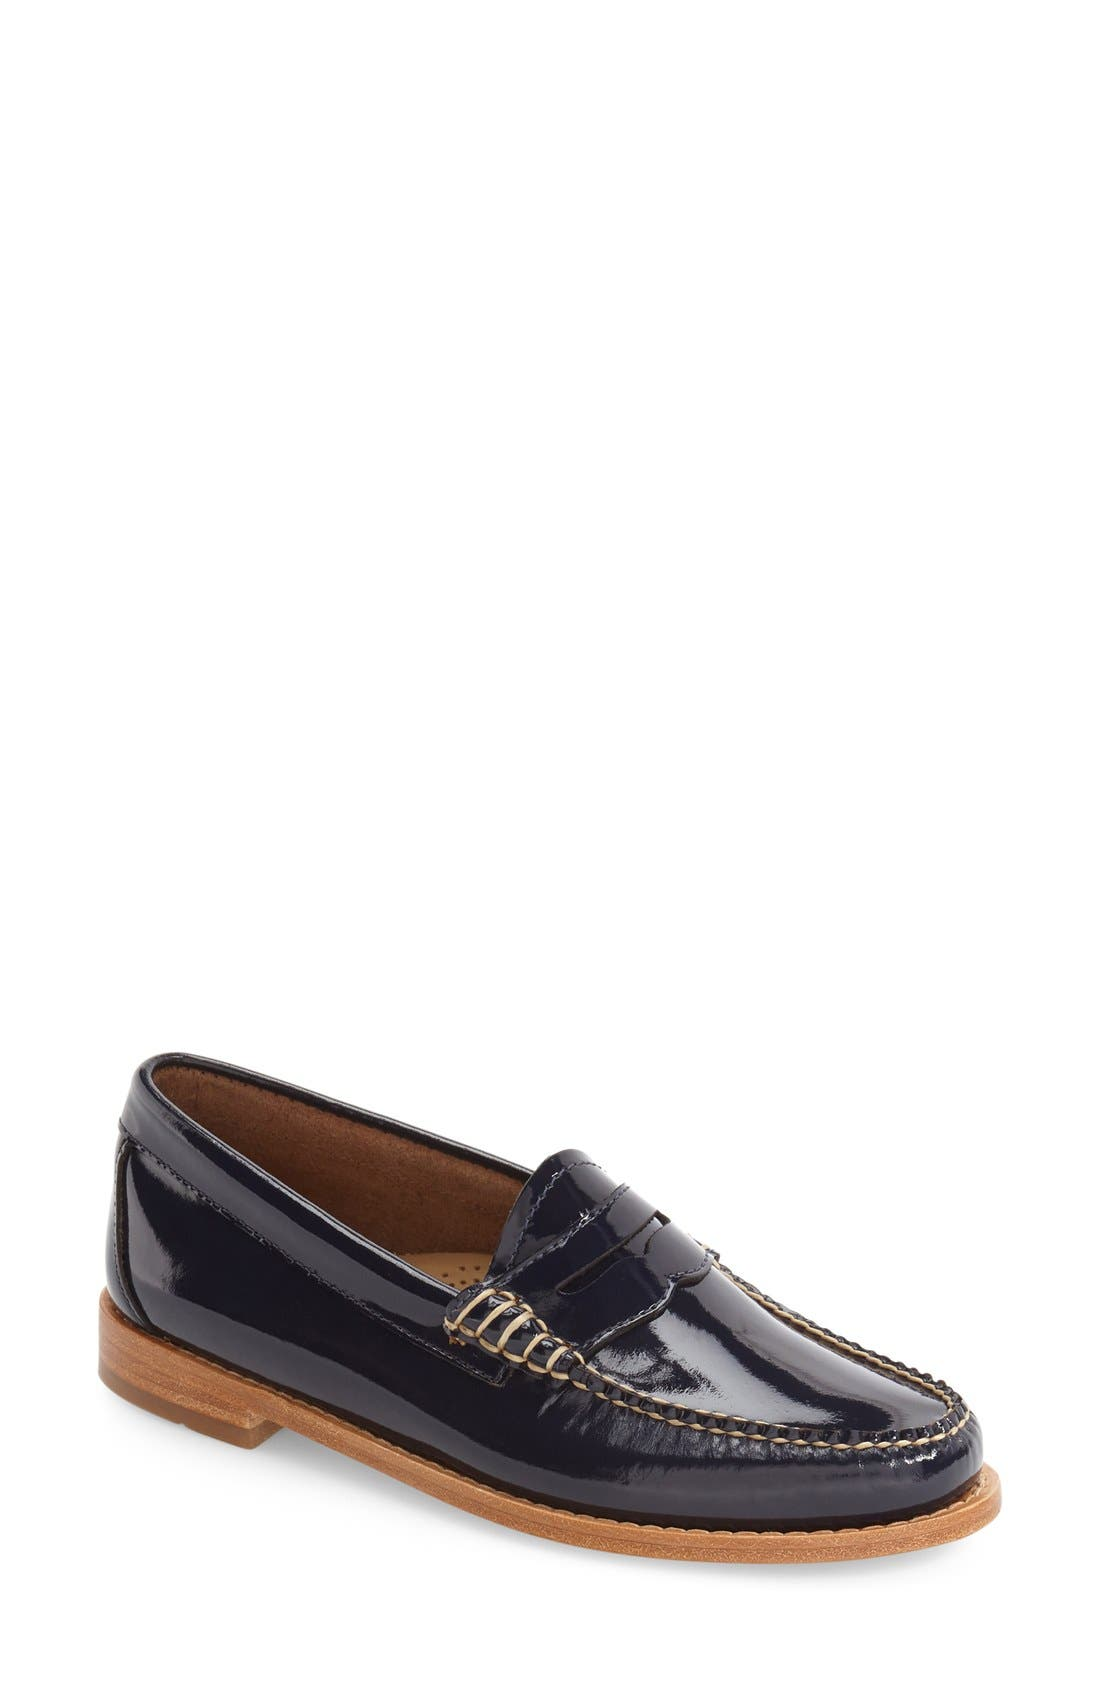 'Whitney' Loafer,                             Main thumbnail 34, color,